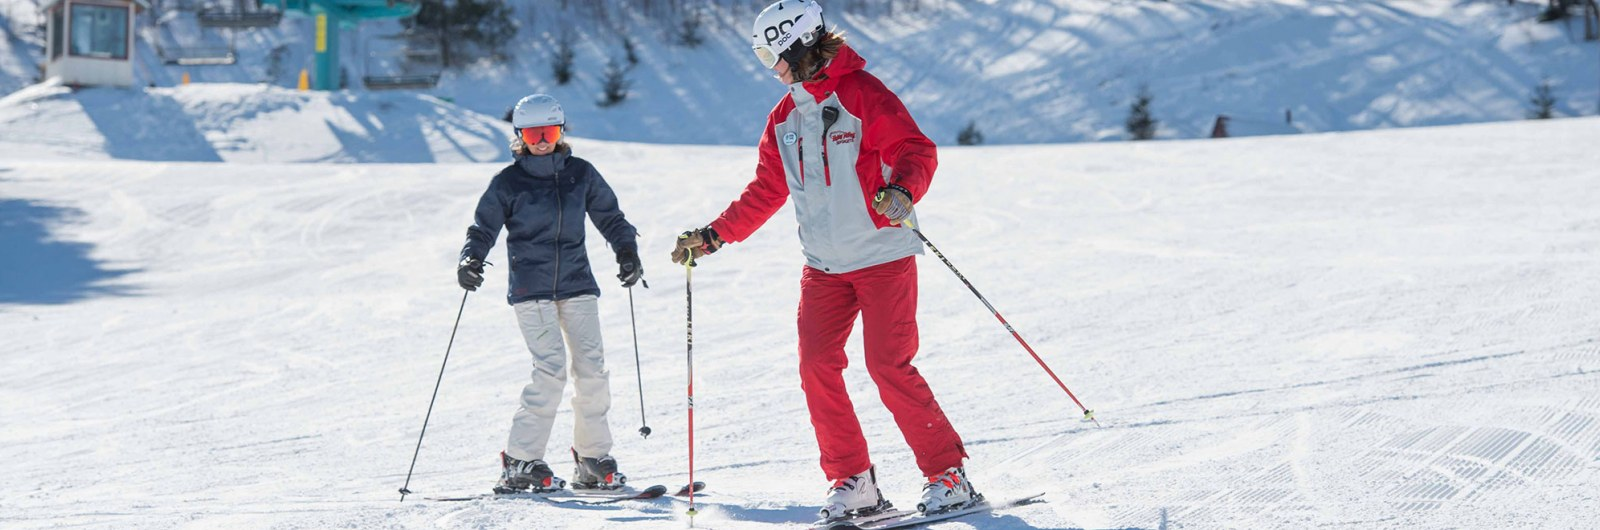 Ski instructor slowly guiding skier down the hill during a lesson